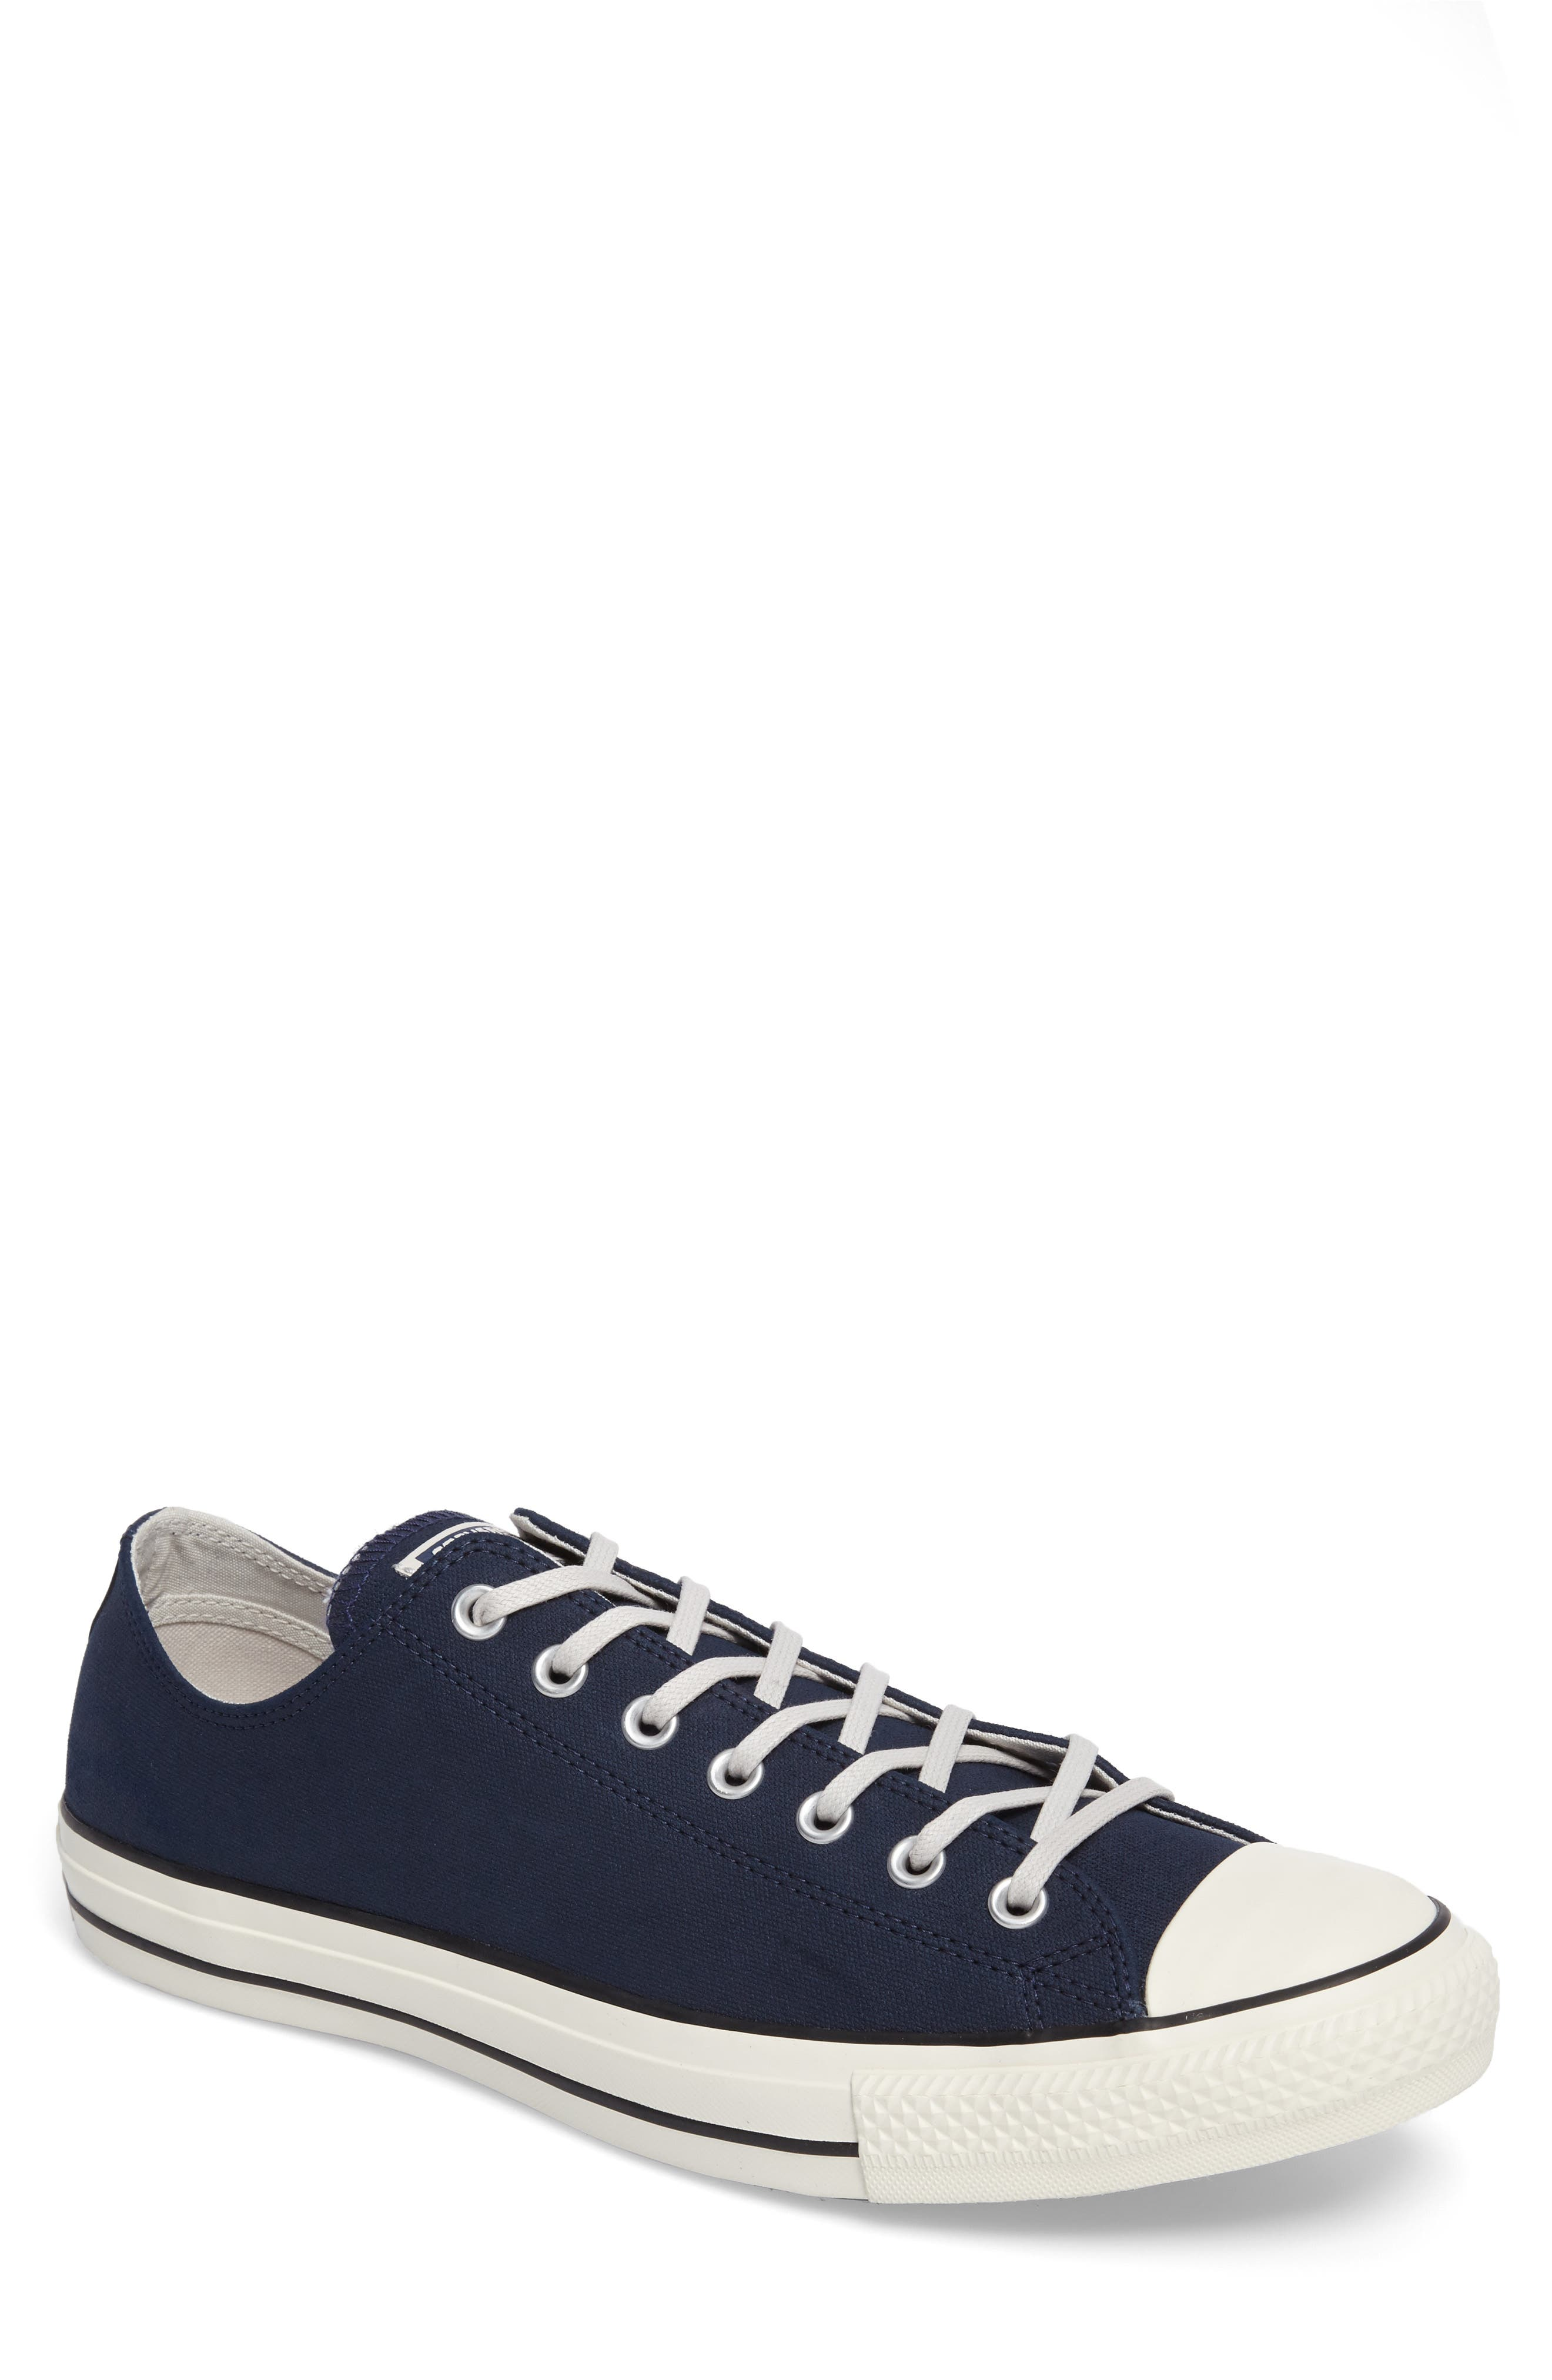 Chuck Taylor<sup>®</sup> All Star<sup>®</sup> Low Top Sneaker,                             Main thumbnail 1, color,                             471